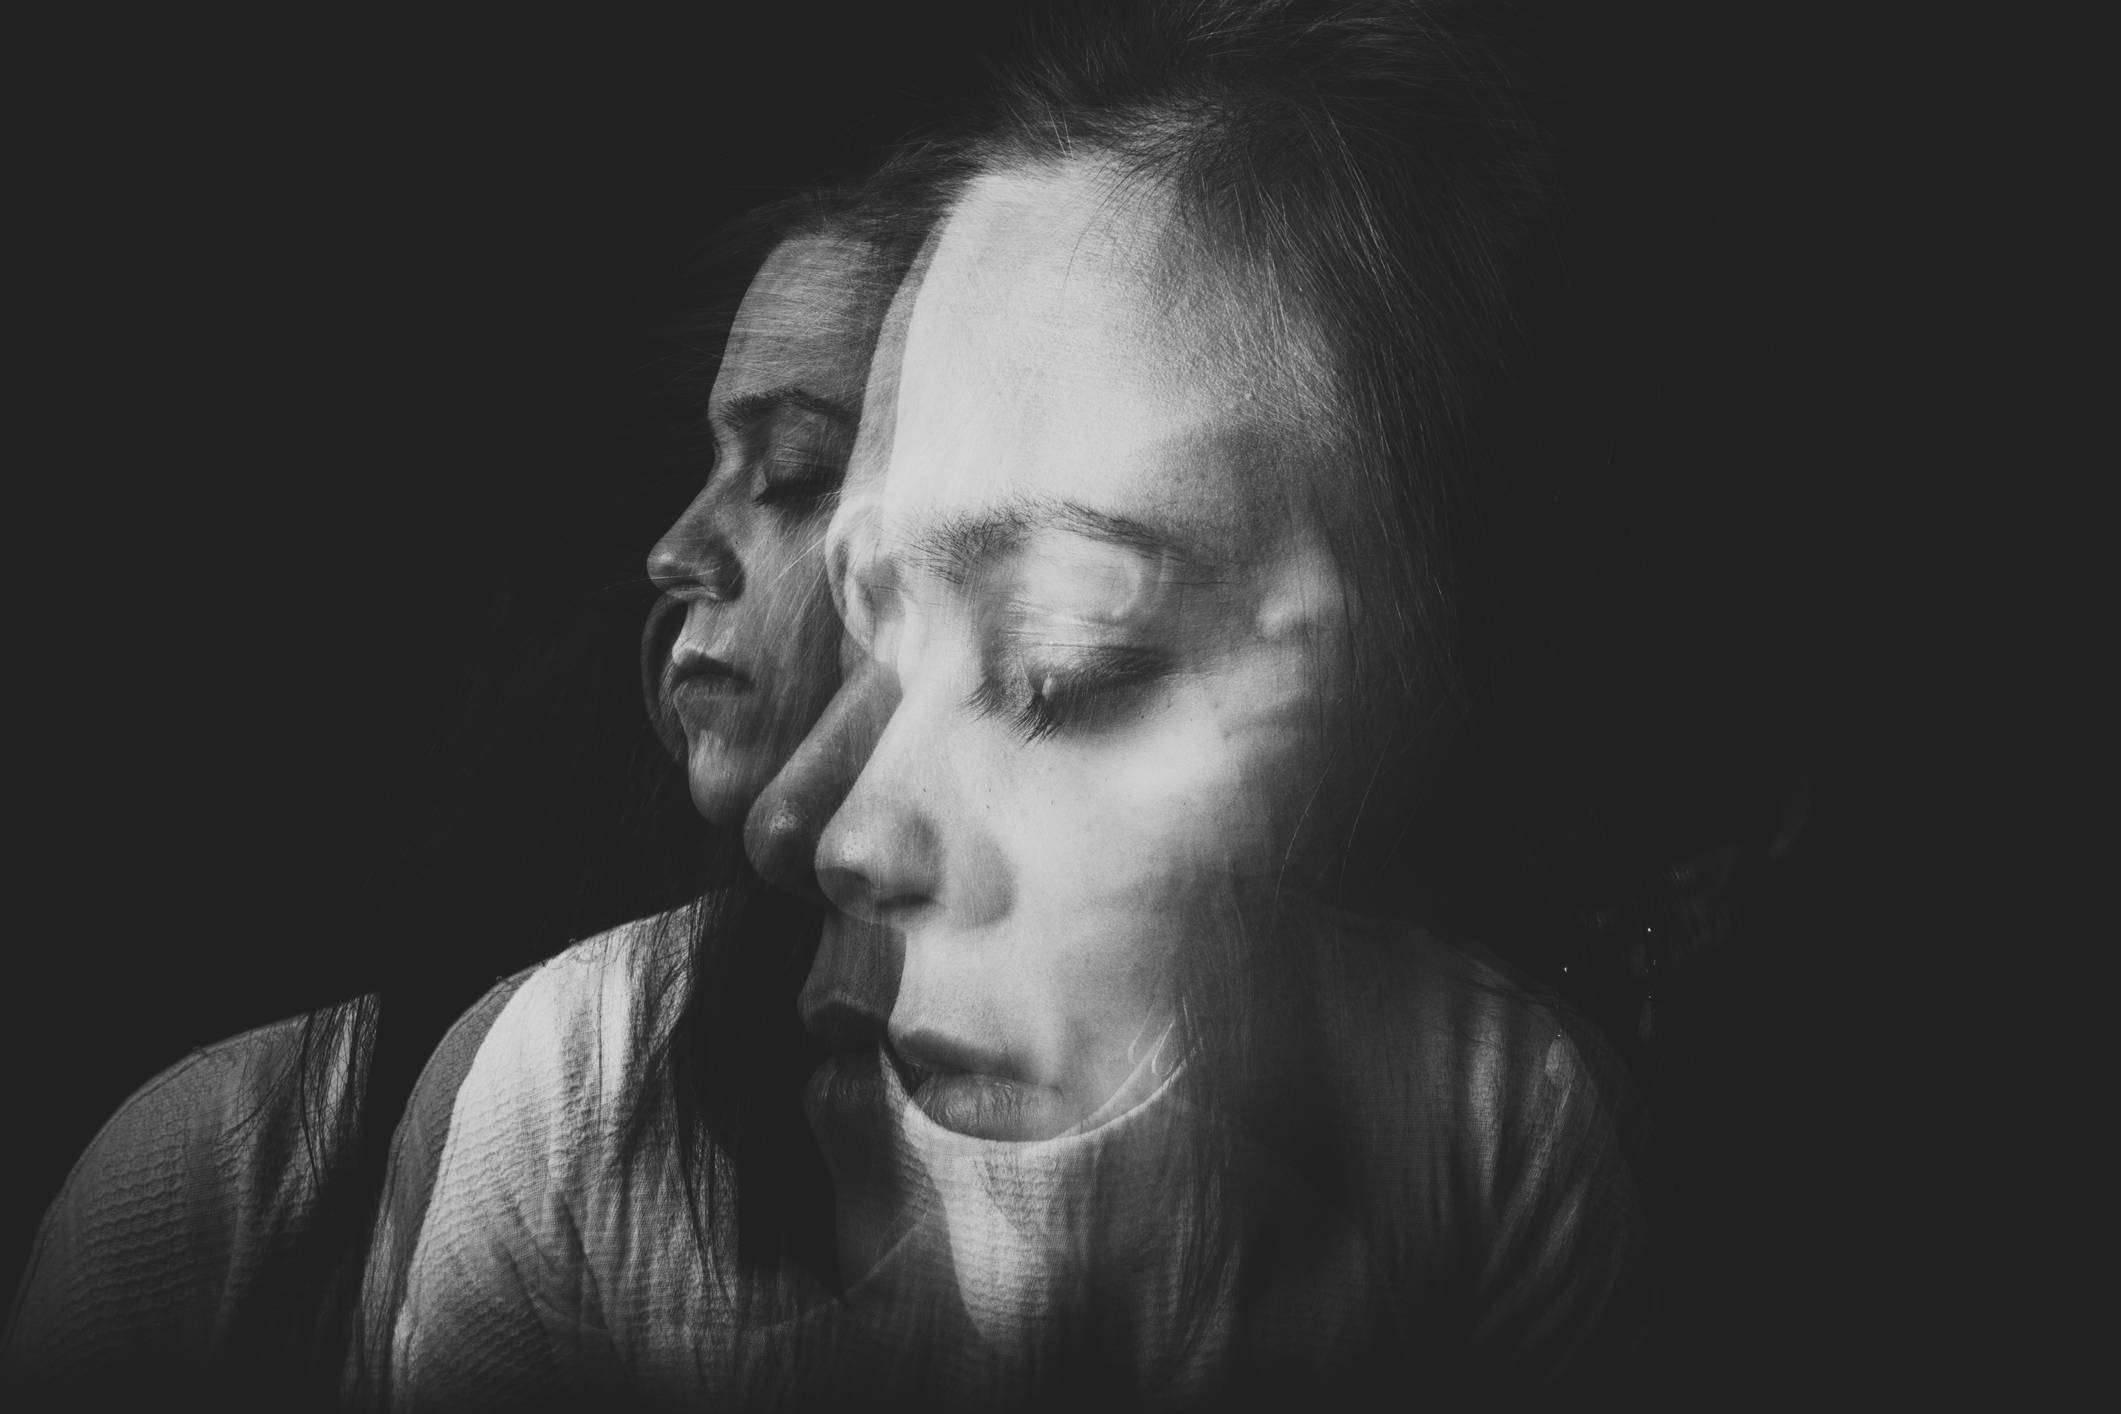 Burnout is common among psychotherapists – now a review has identified the personal characteristics that increase the risk further